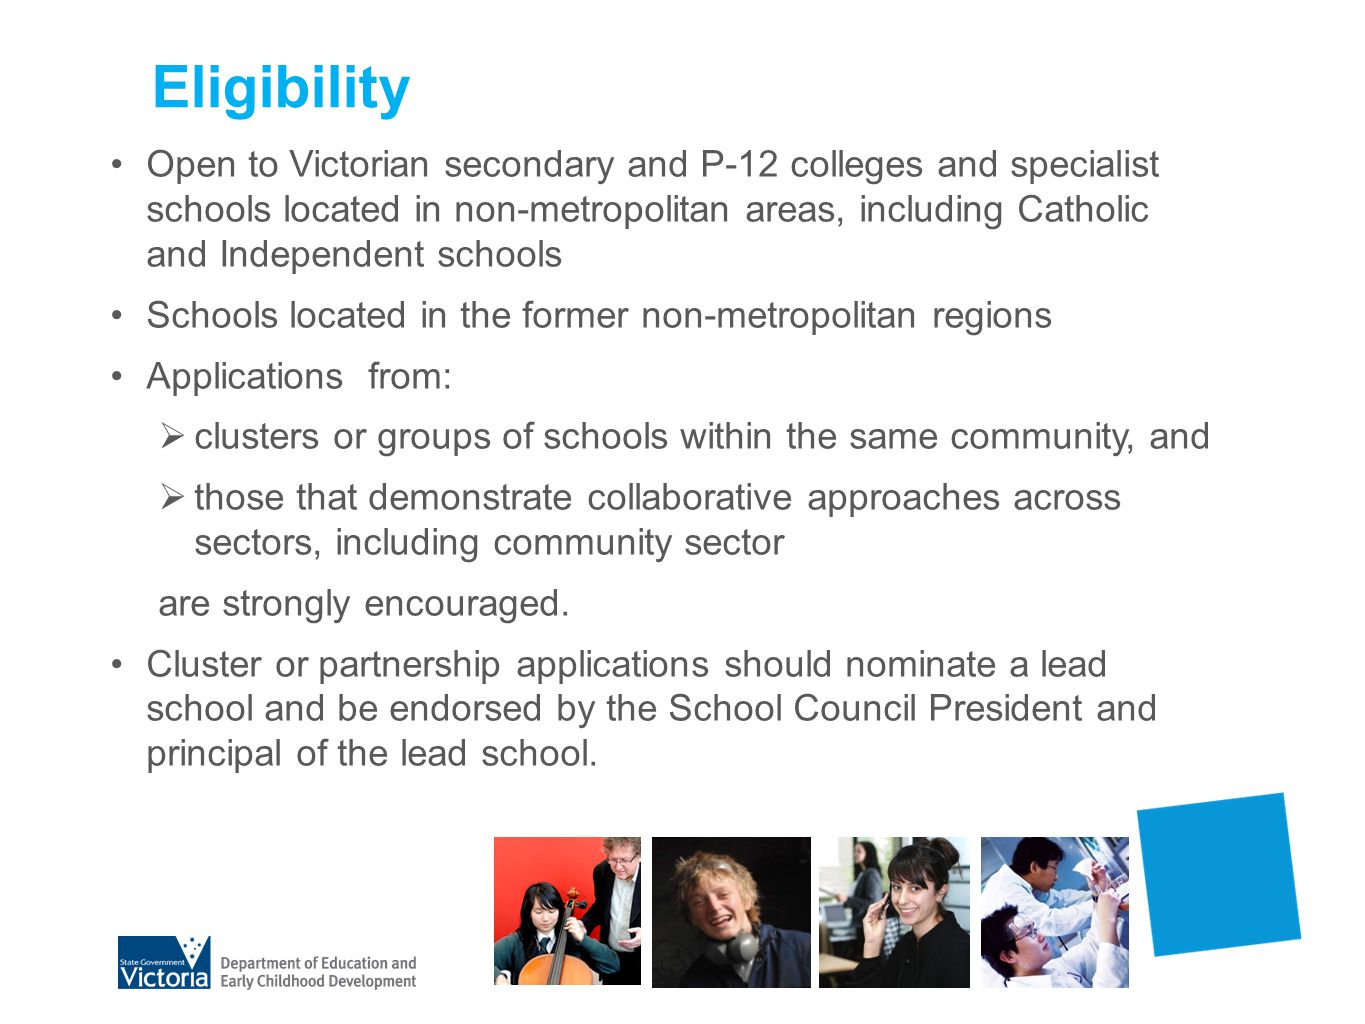 Eligibility Open to Victorian secondary and P-12 colleges and specialist schools located in non-metropolitan areas, including Catholic and Independent schools Schools located in the former non-metropolitan regions Applications from: clusters or groups of schools within the same community, and those that demonstrate collaborative approaches across sectors, including community sector are strongly encouraged.